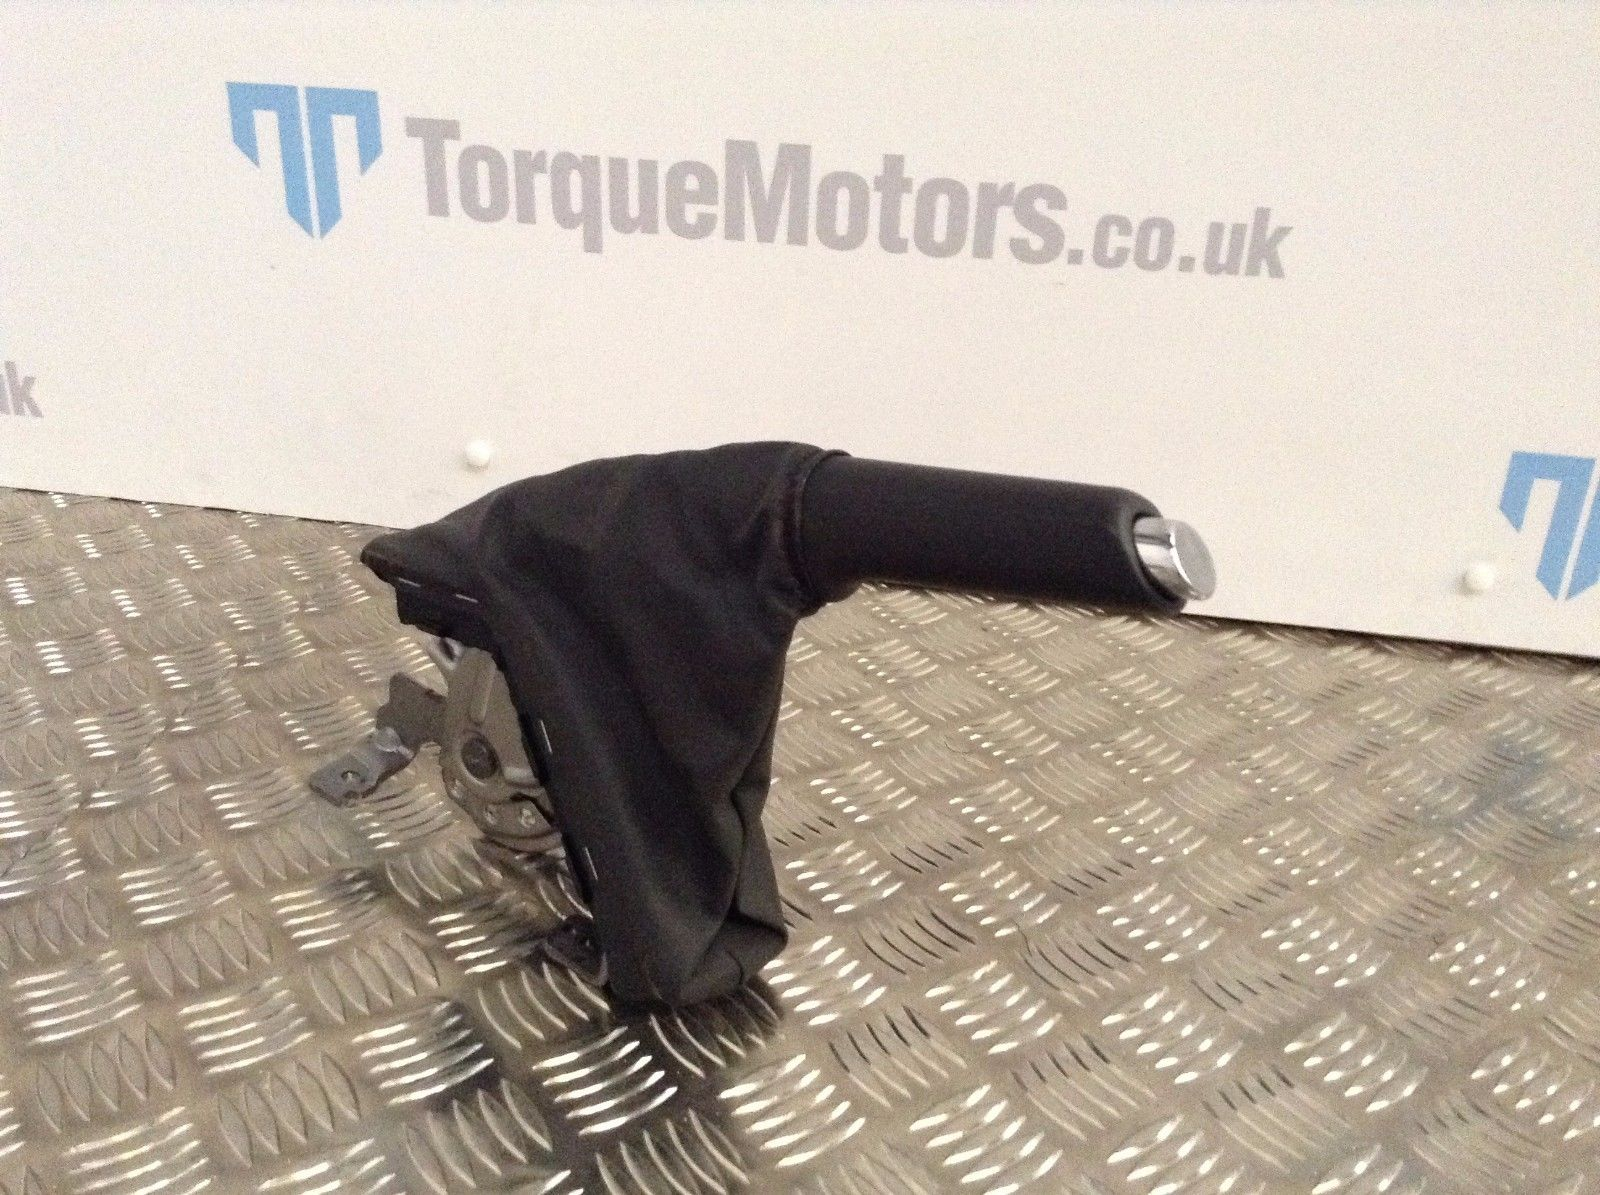 Vauxhall Used Car Parts Spares Torque Motors Where Is The Fuse Box Astra Mk4